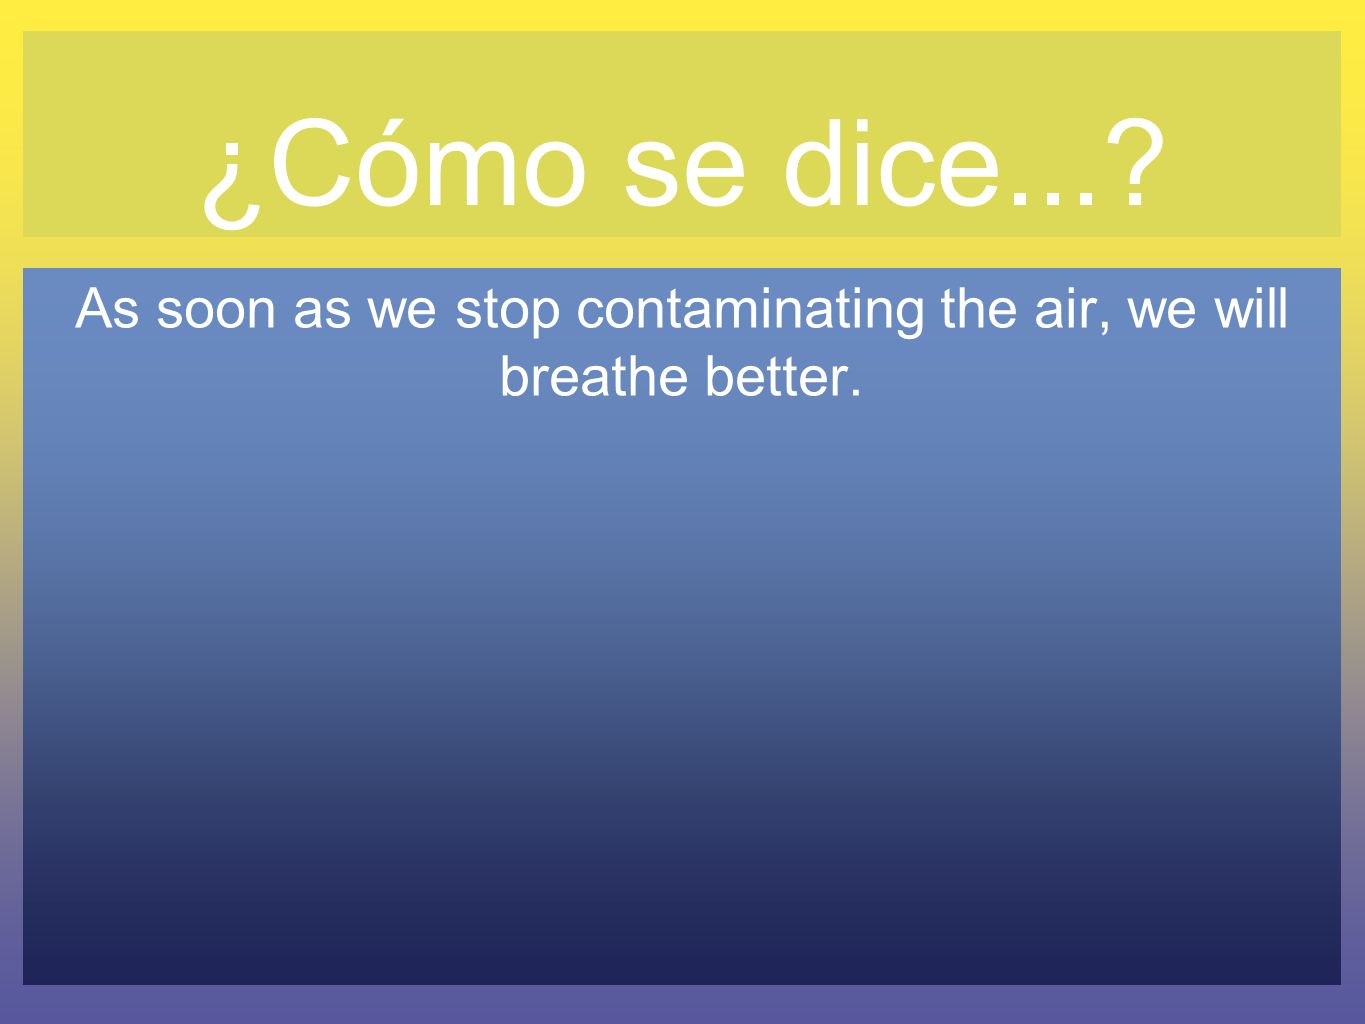 ¿Cómo se dice...? As soon as we stop contaminating the air, we will breathe better.